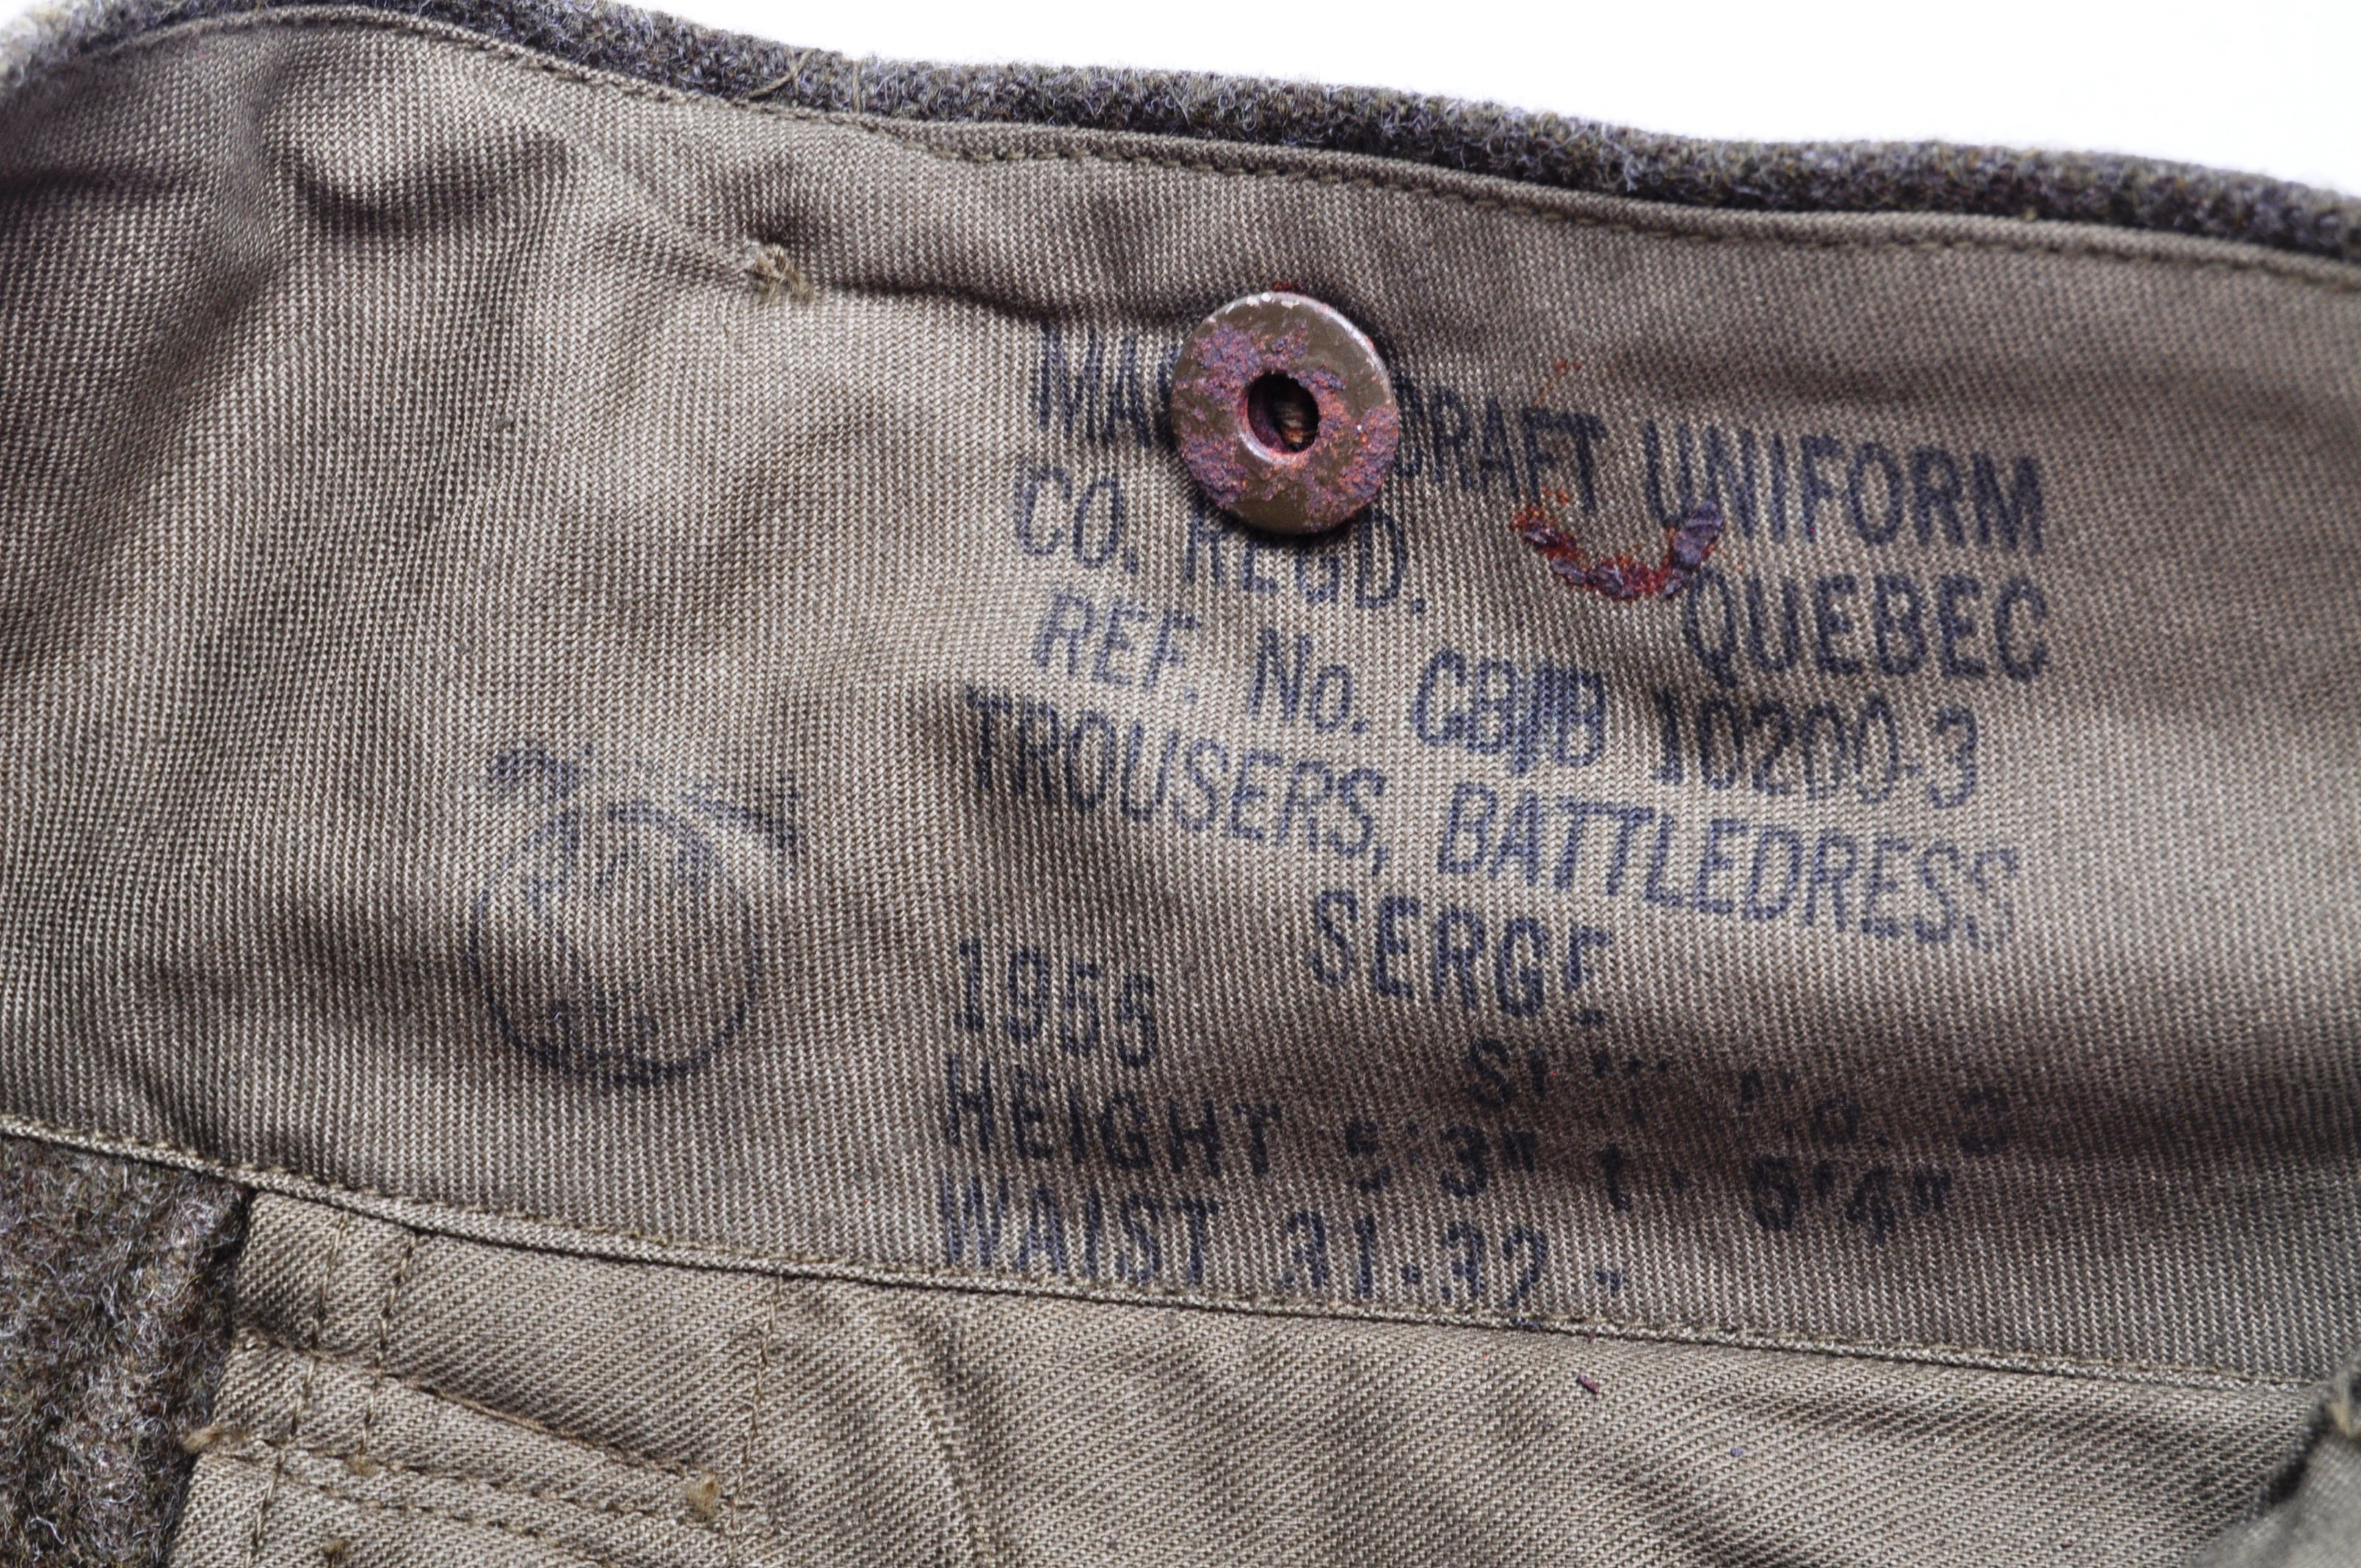 WWII SECOND WORLD WAR INTEREST - BRITISH ARMY TROUSERS - Image 2 of 7